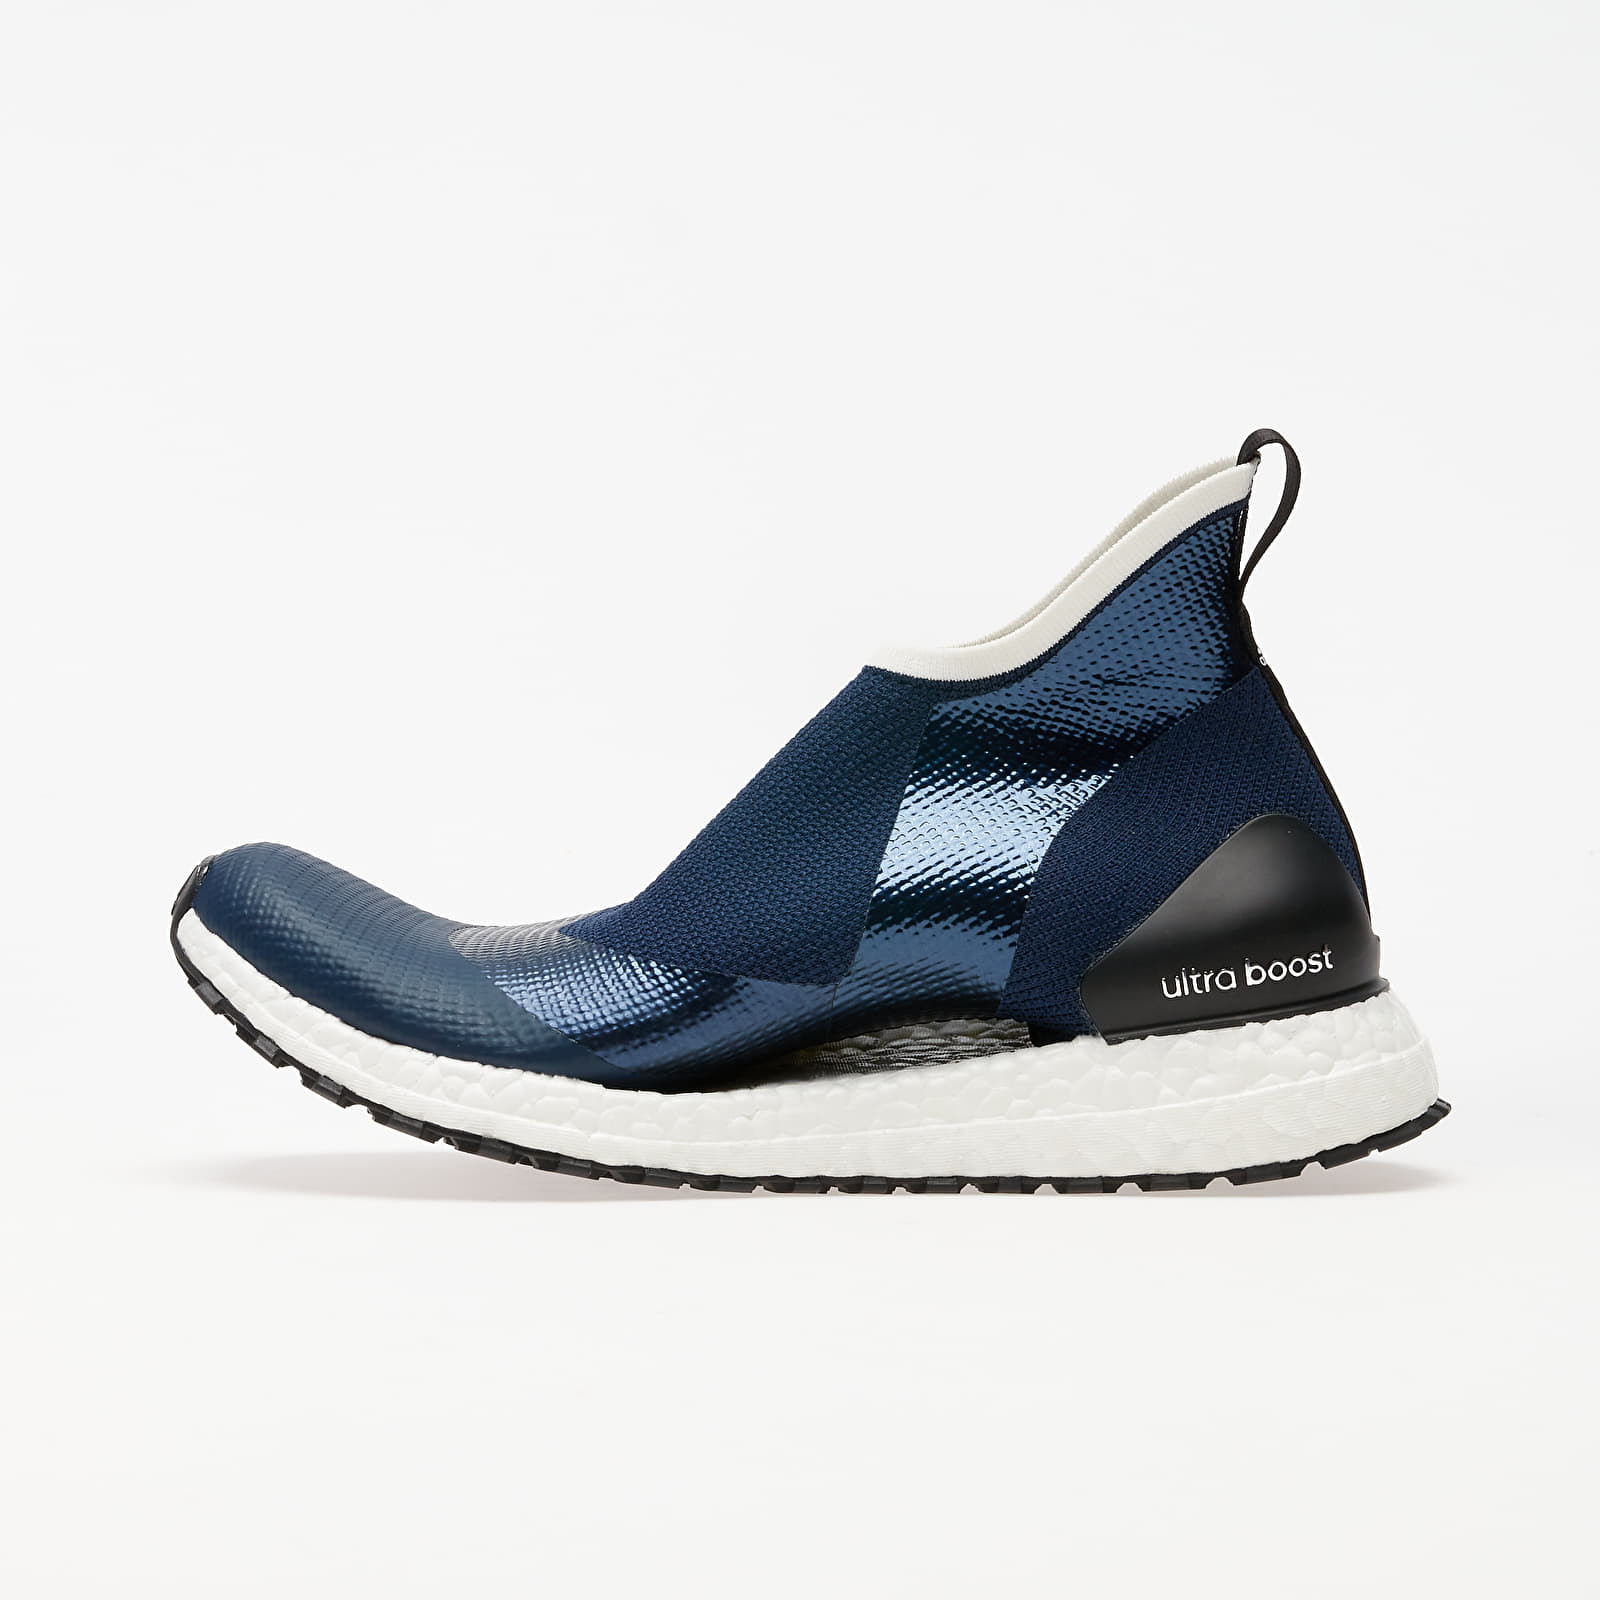 Chaussures et baskets femme adidas x Stella McCartney Ultraboost X All Terrain Nindigo/ Core Black/ Chalk White